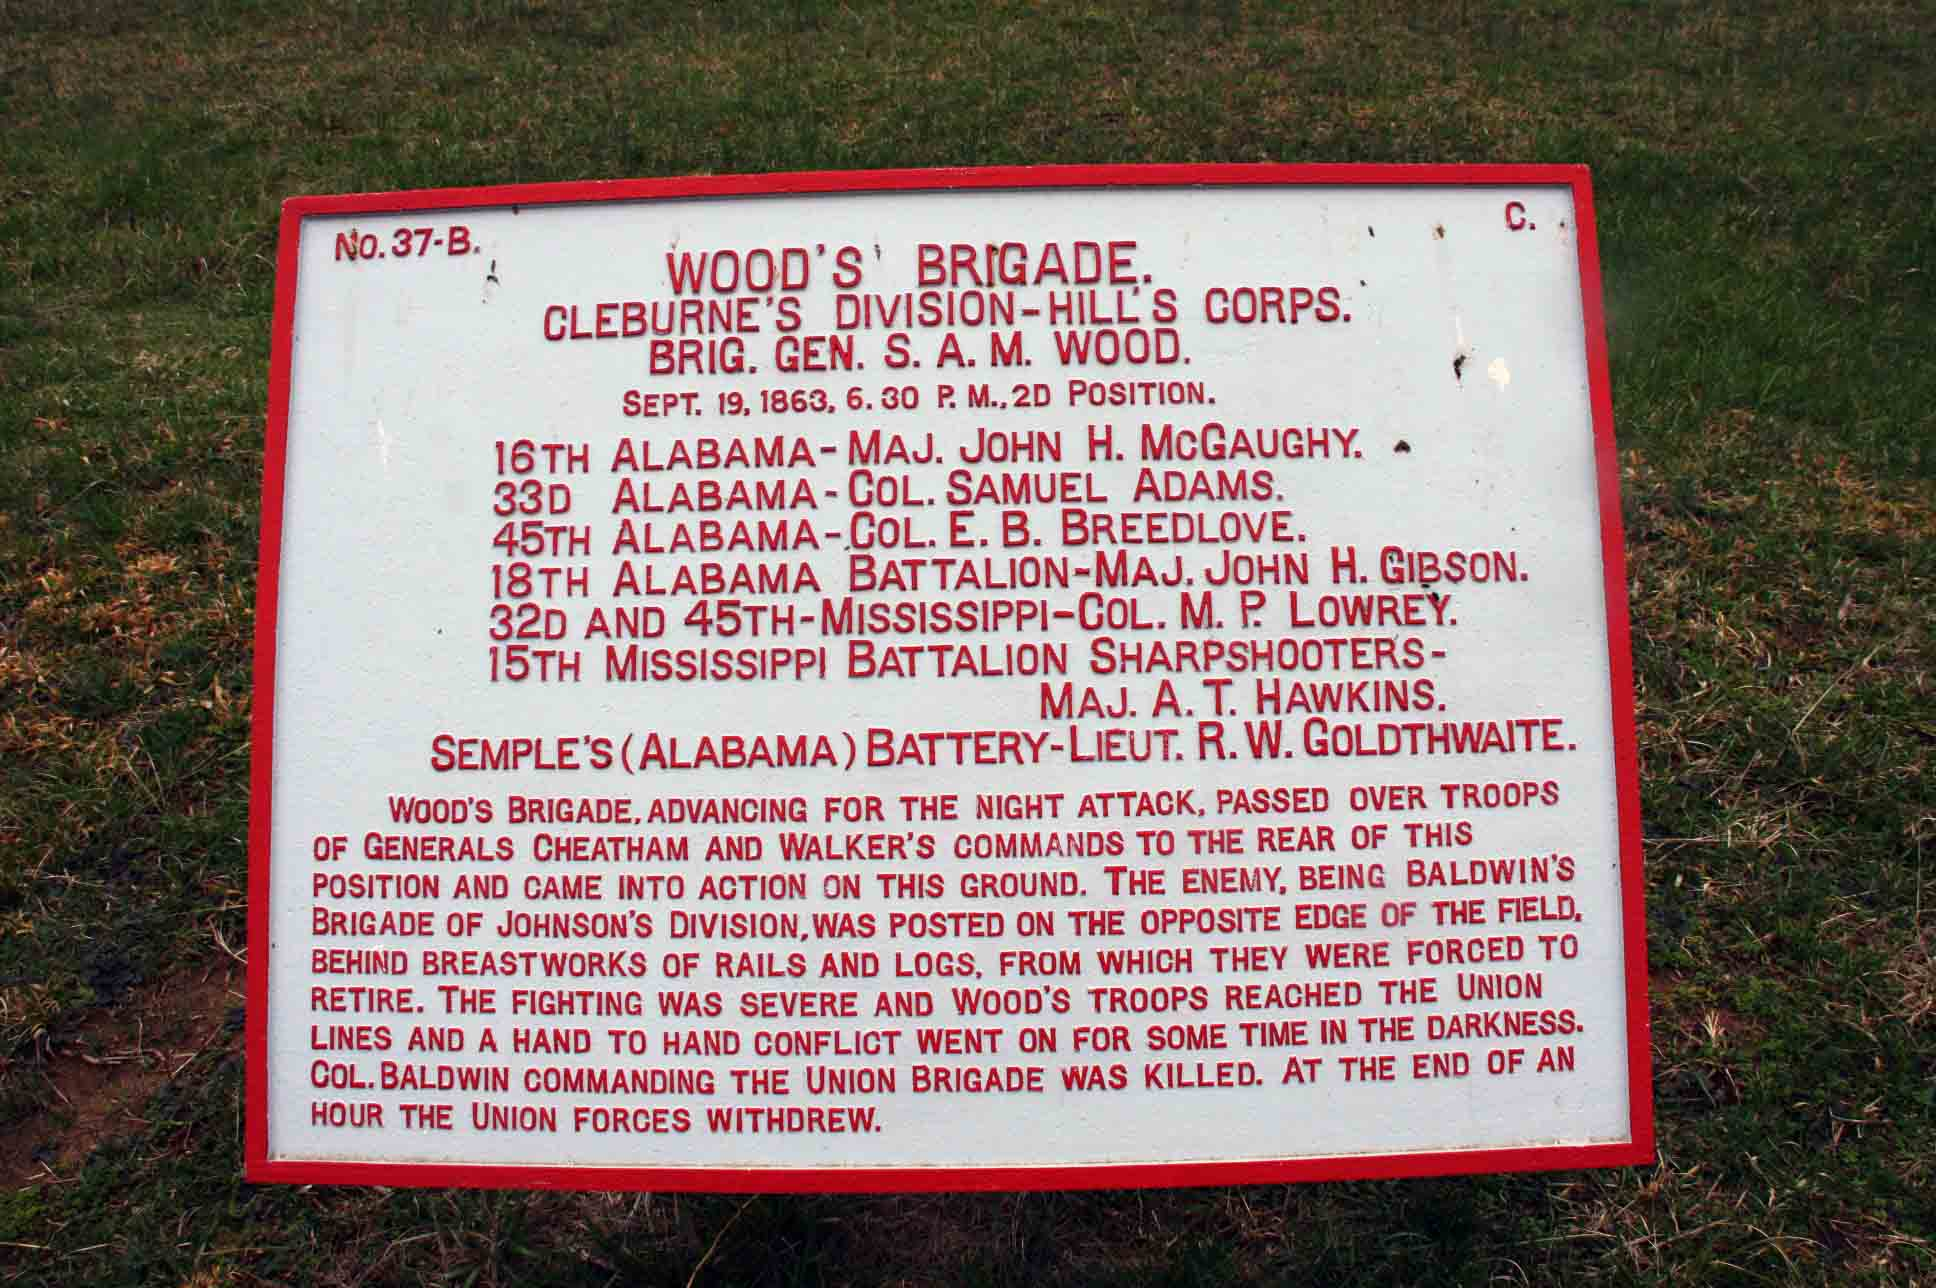 Wood's Brigade Plaque, click photo to enlarge.